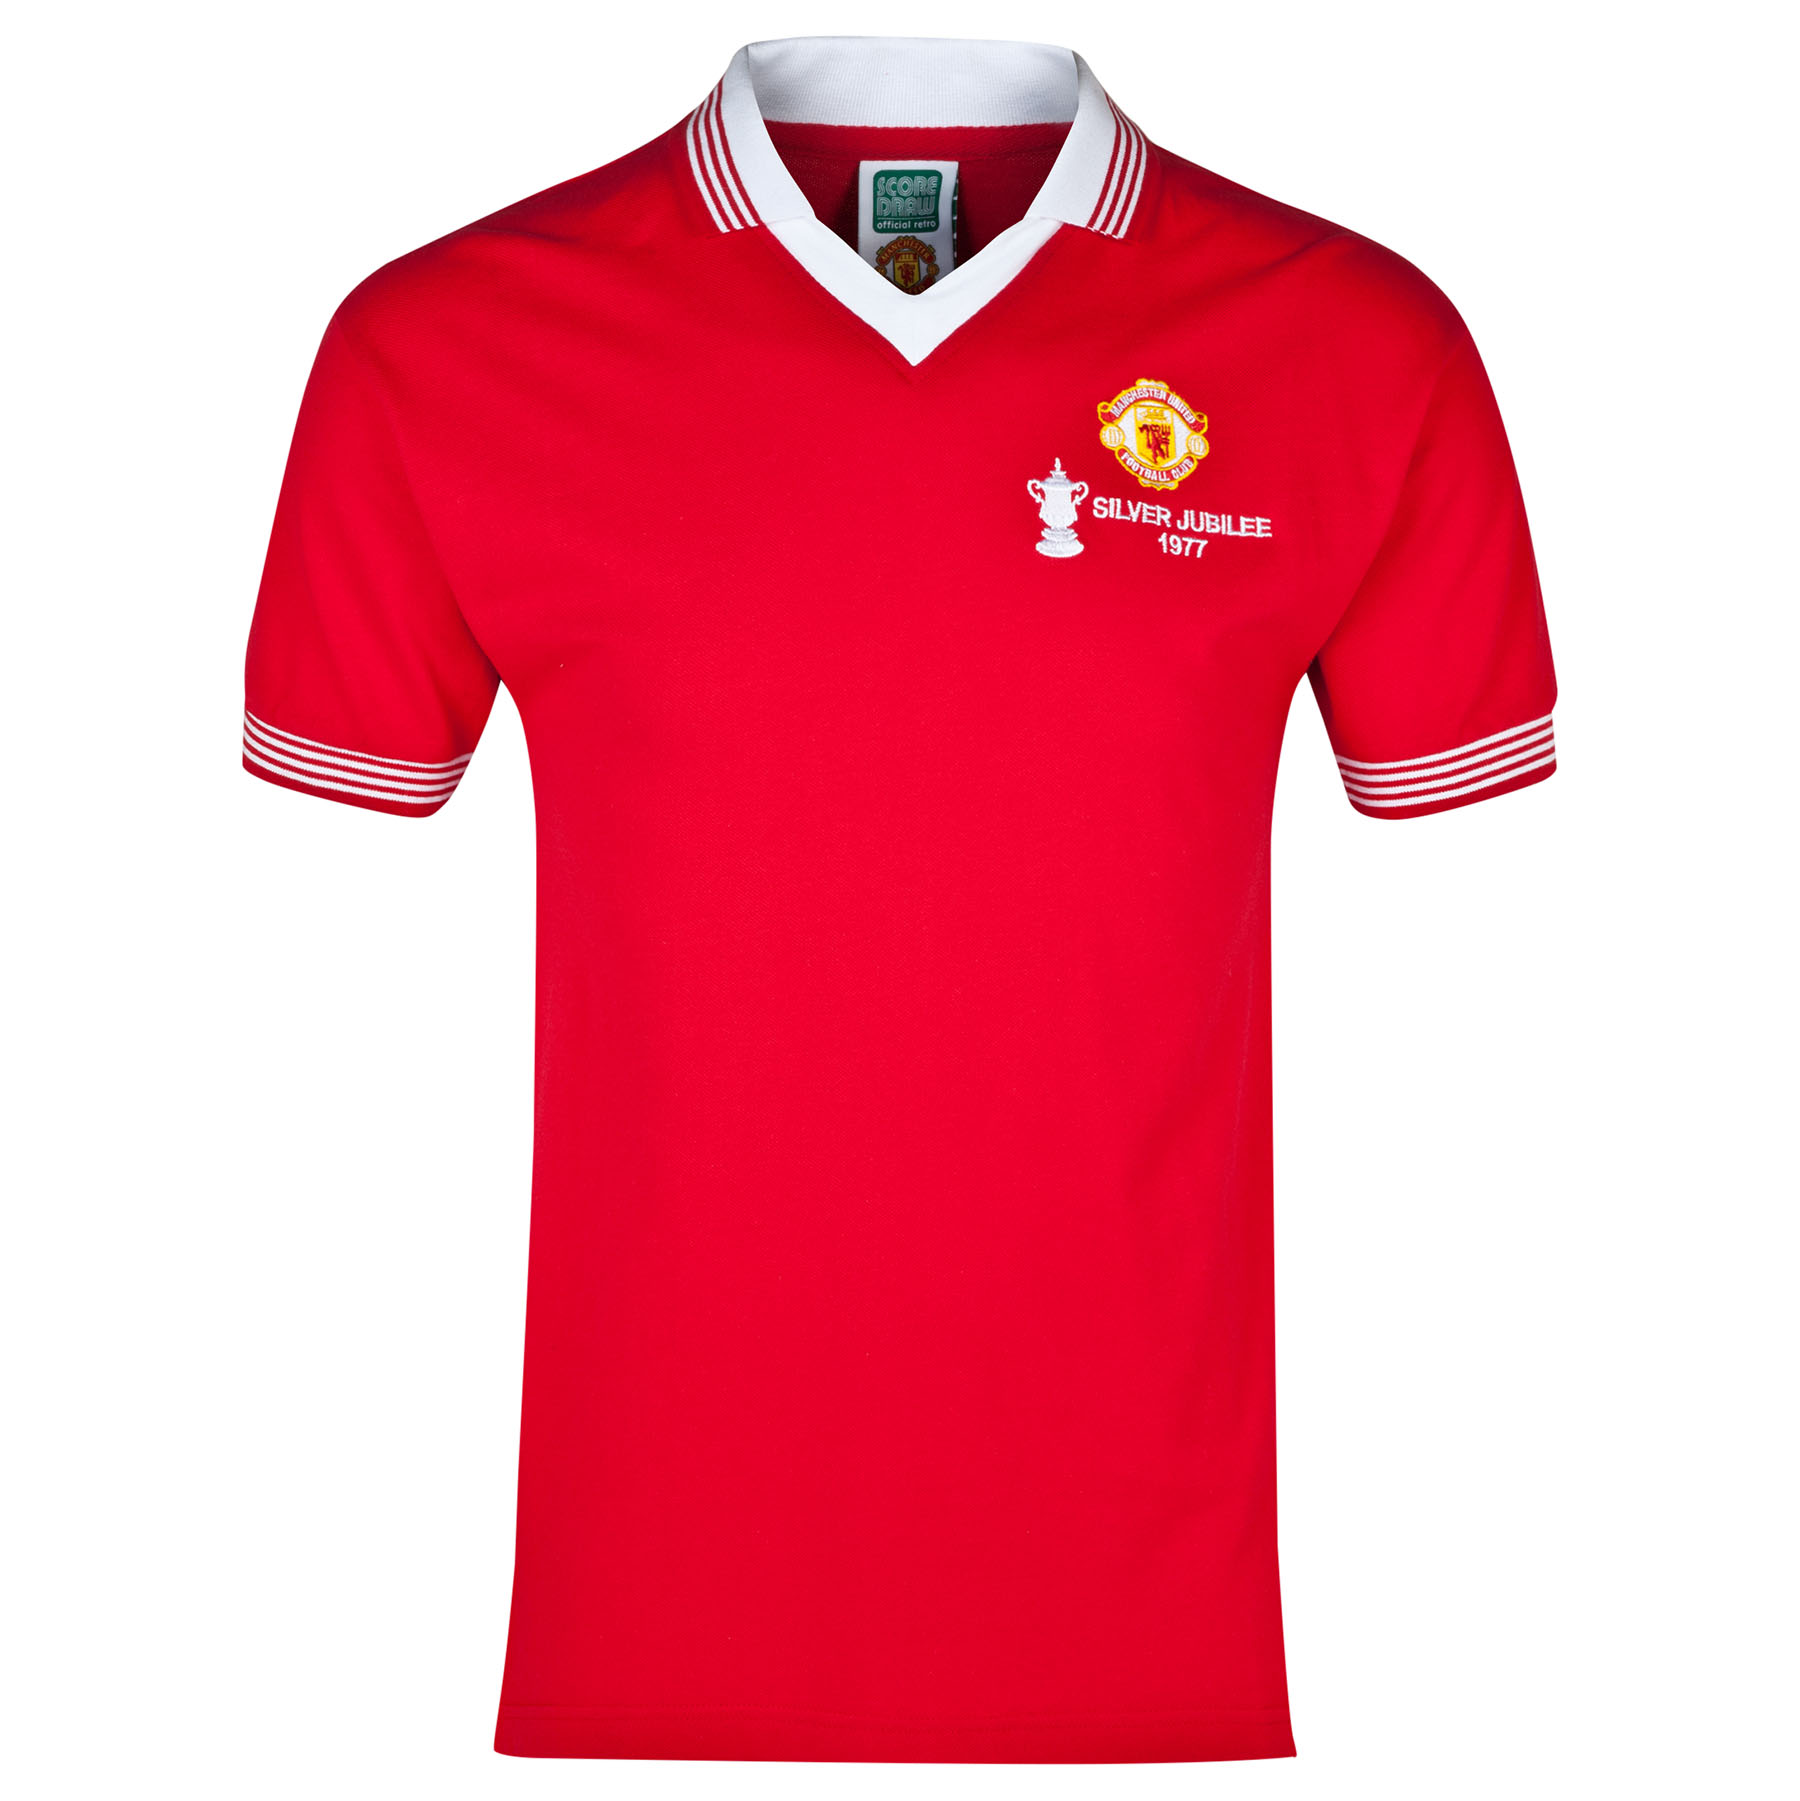 Manchester United 1977 Retro Home Shirt - Red